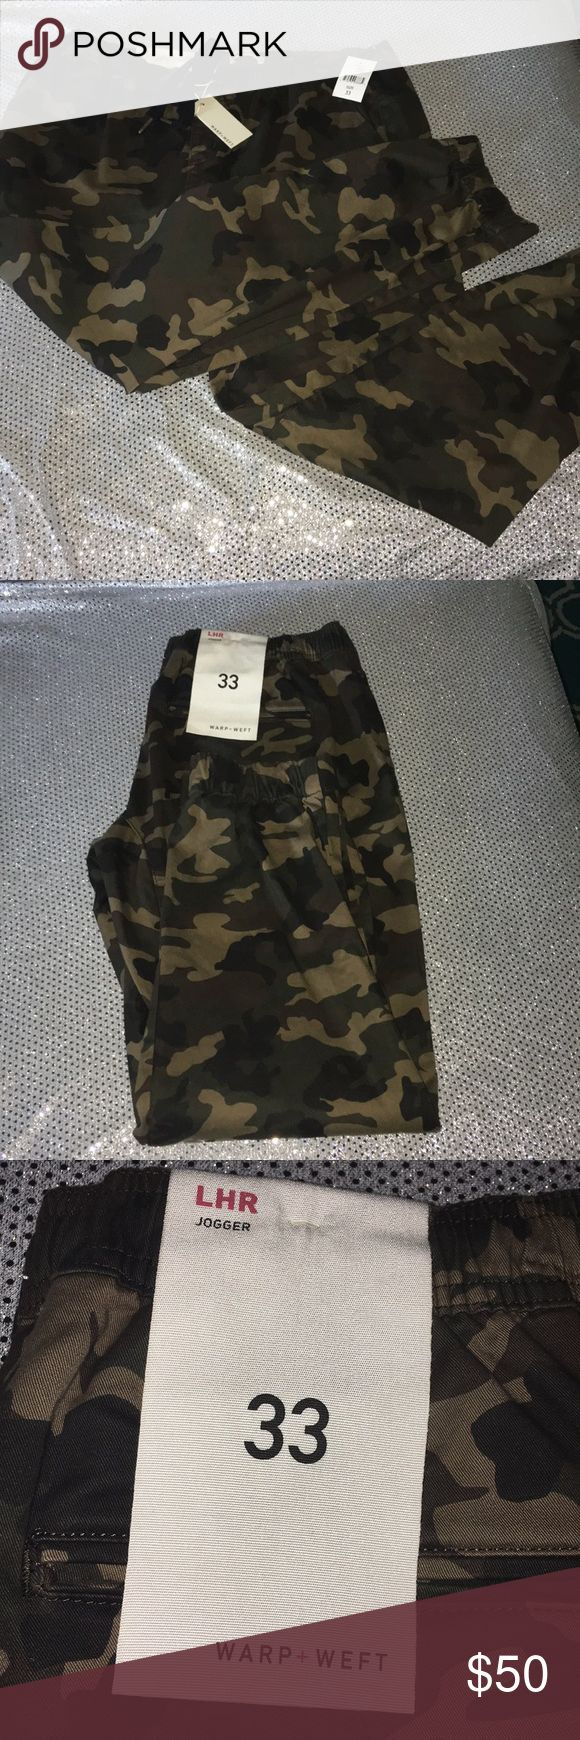 Warp + Weft Camo LHR Joggers Size 33 East London I…